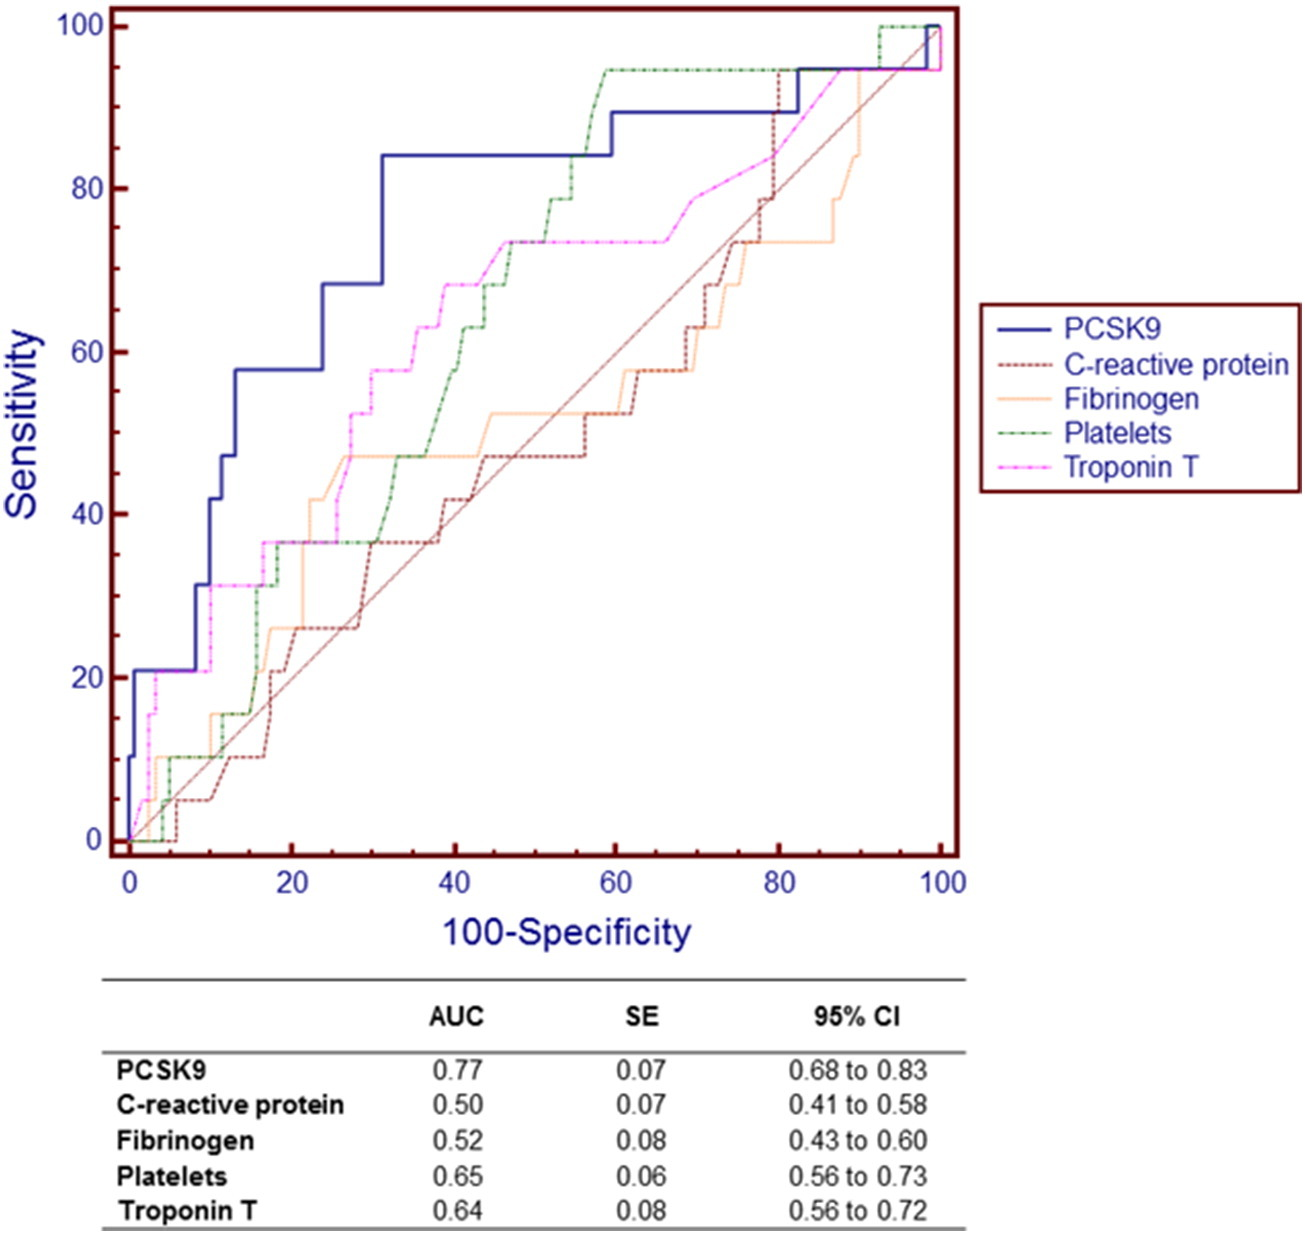 Multiplate platelet aggregation study